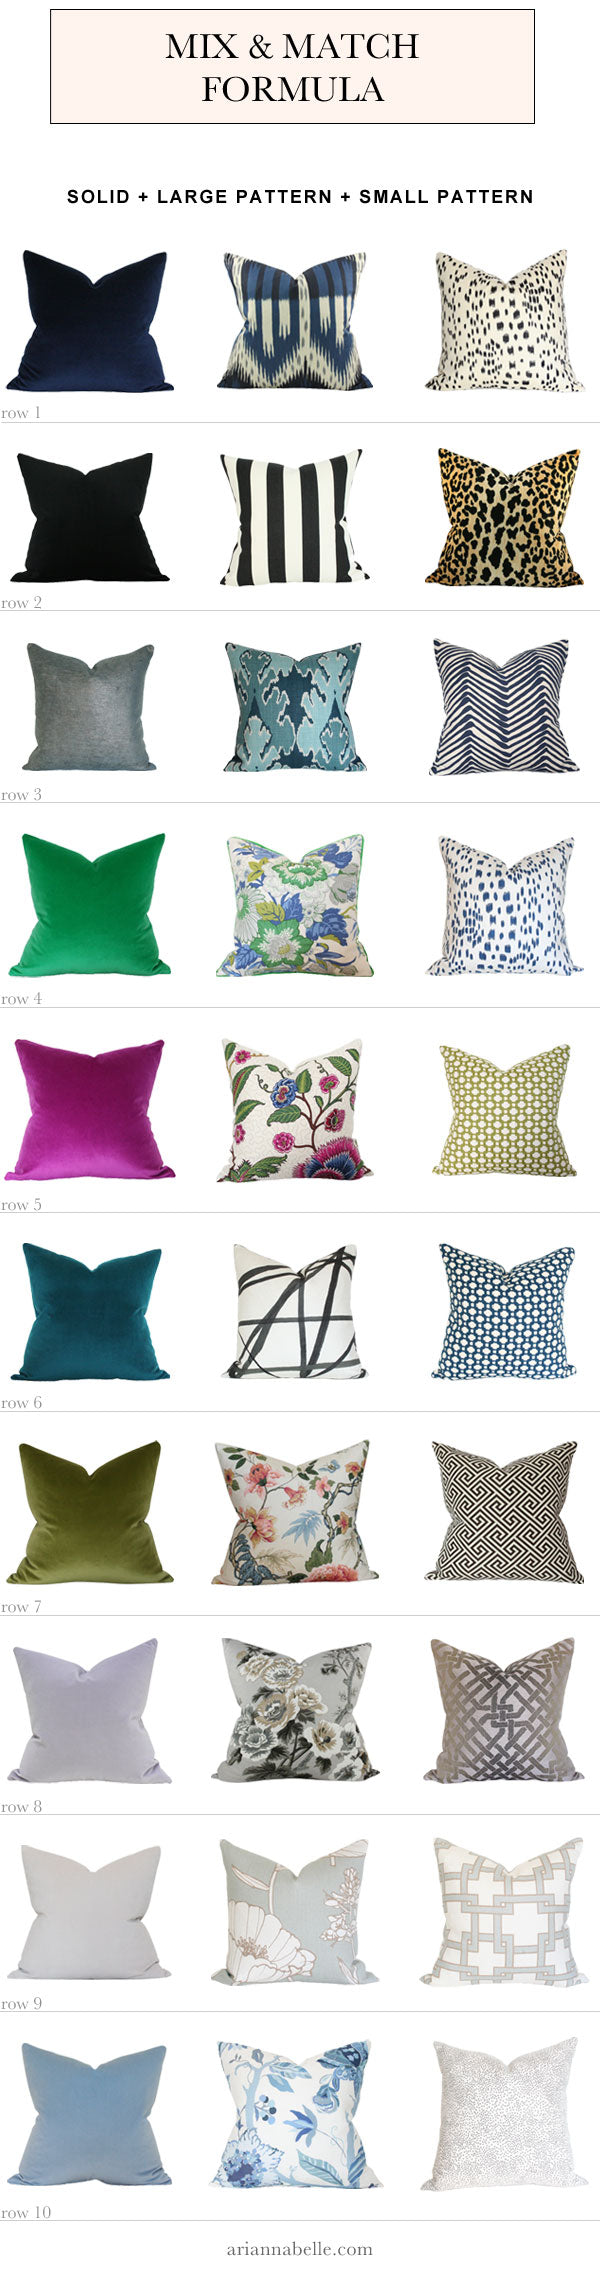 How to Mix and Match Pillows - Decorating Guide